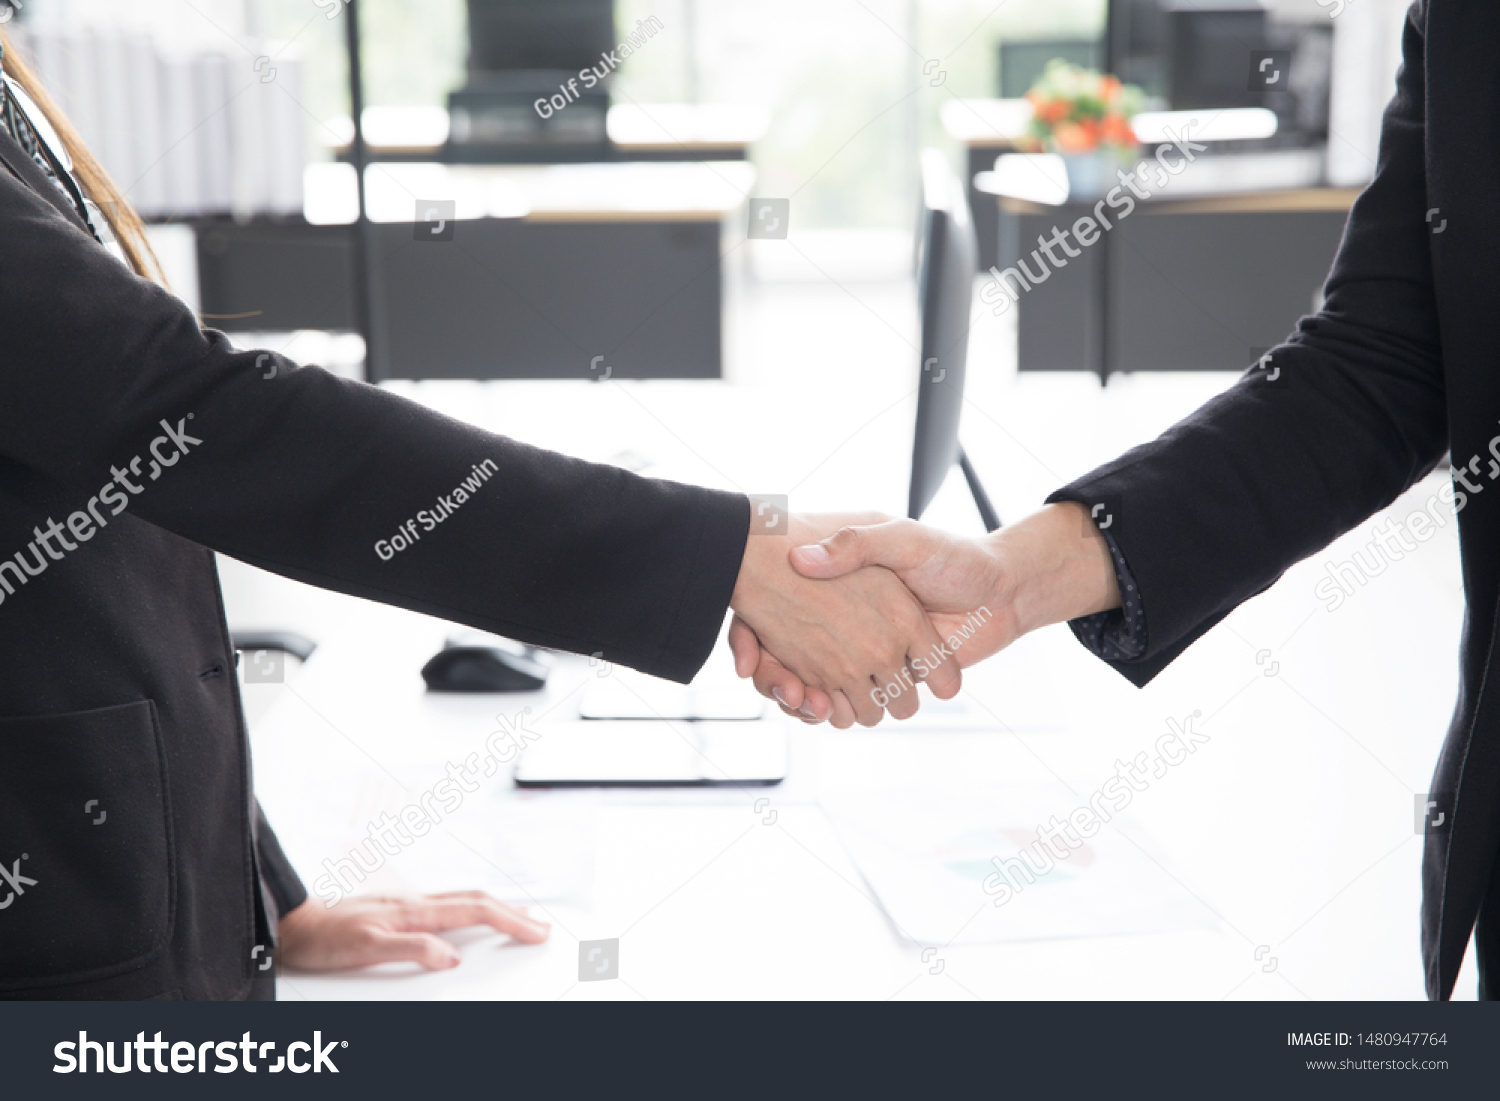 stock-photo-hand-holding-in-business-fir